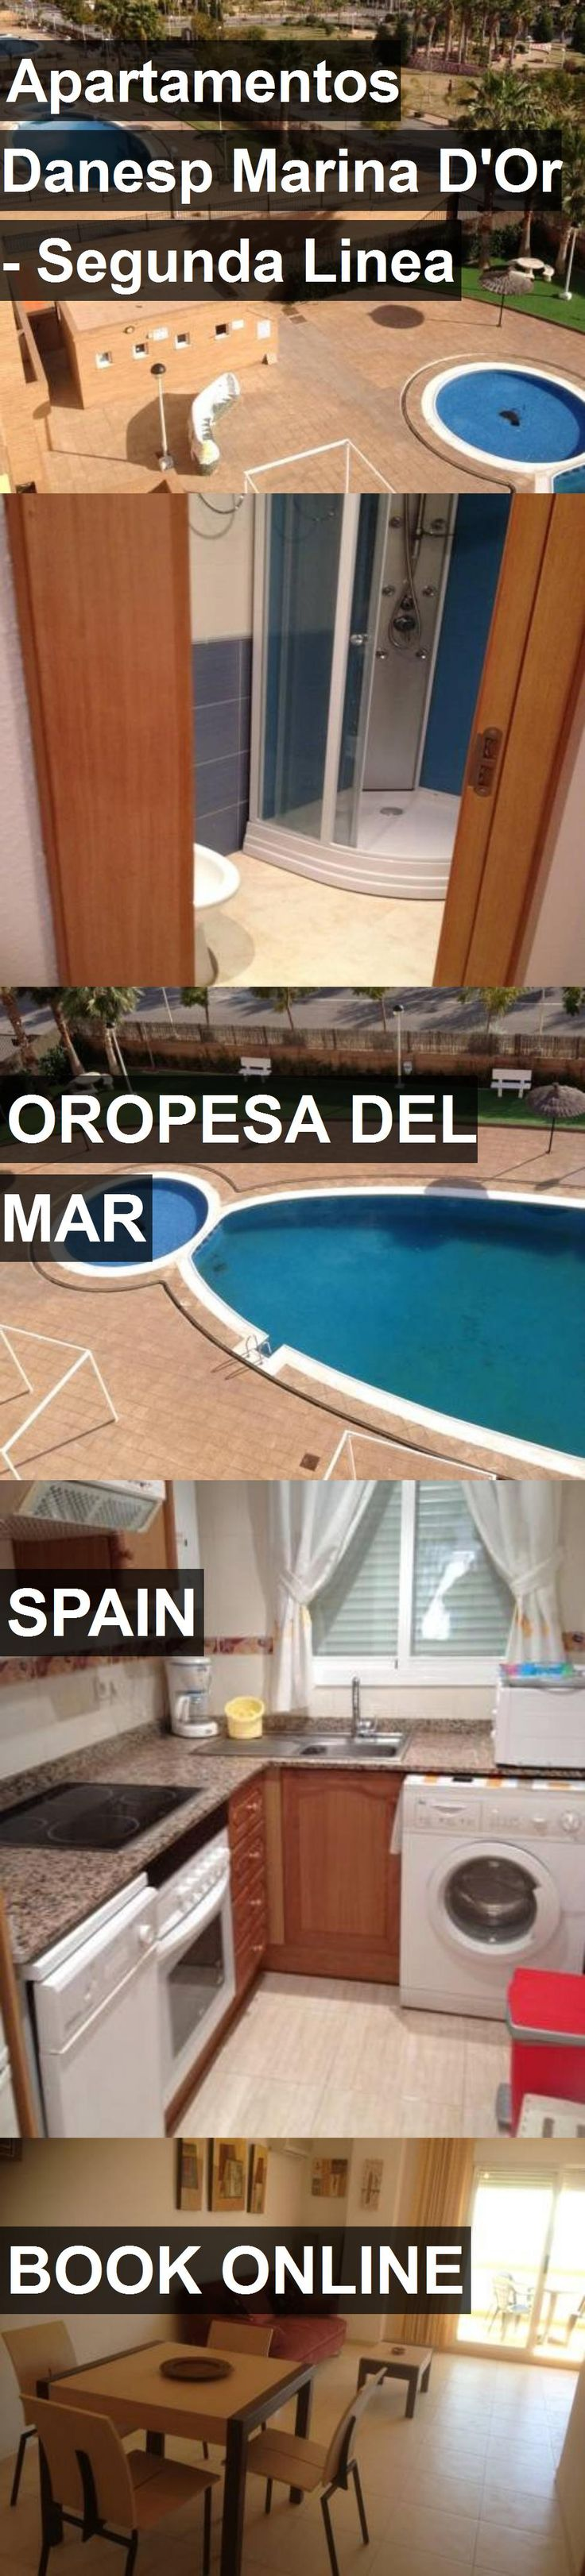 Hotel Apartamentos Danesp Marina D'Or - Segunda Linea in Oropesa del Mar, Spain. For more information, photos, reviews and best prices please follow the link. #Spain #OropesadelMar #travel #vacation #hotel